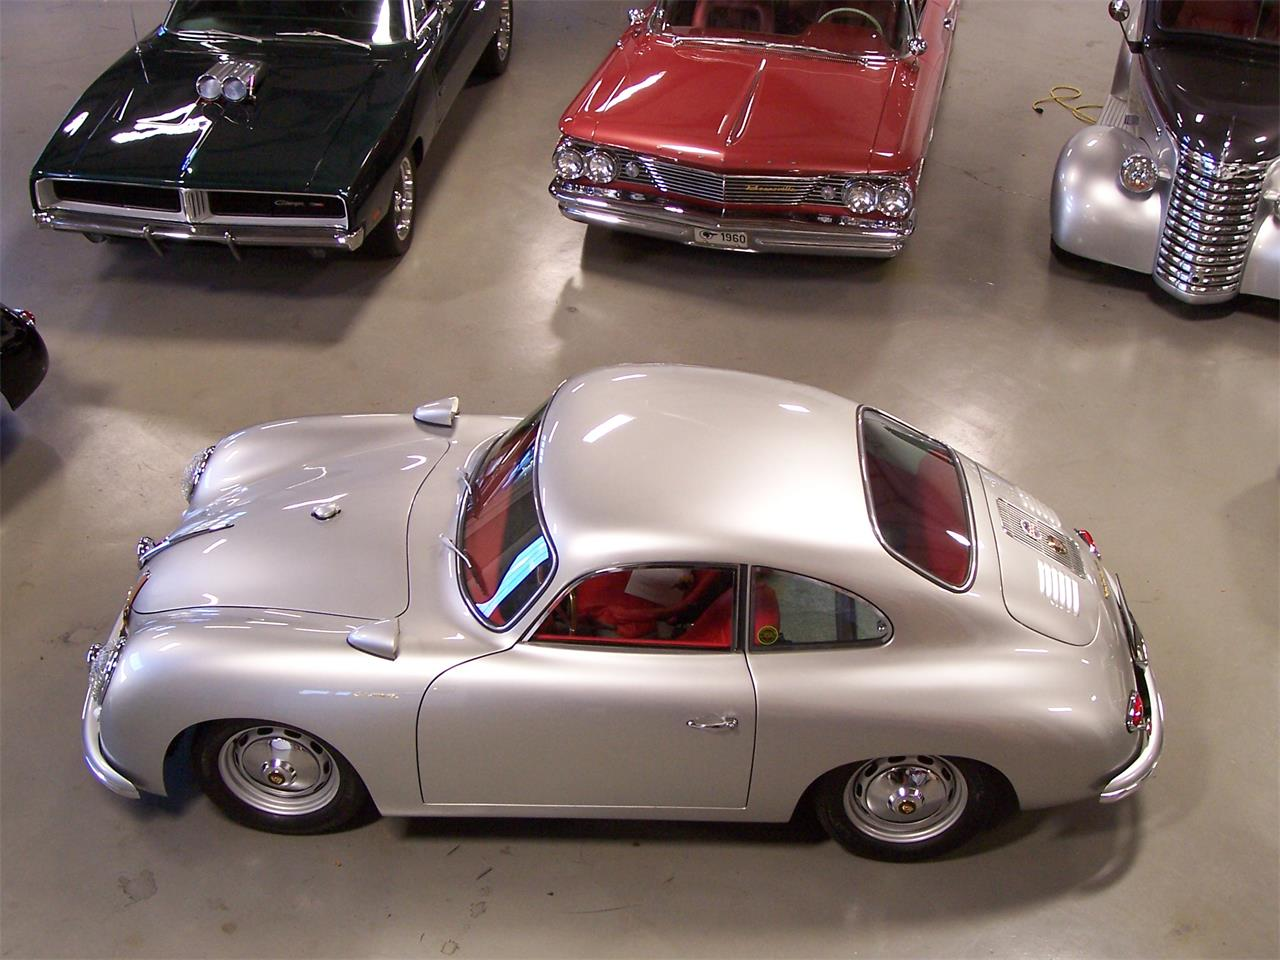 Large Picture of 1957 Porsche 356 located in Georgia - $48,900.00 Offered by Cloud 9 Classics - P08V